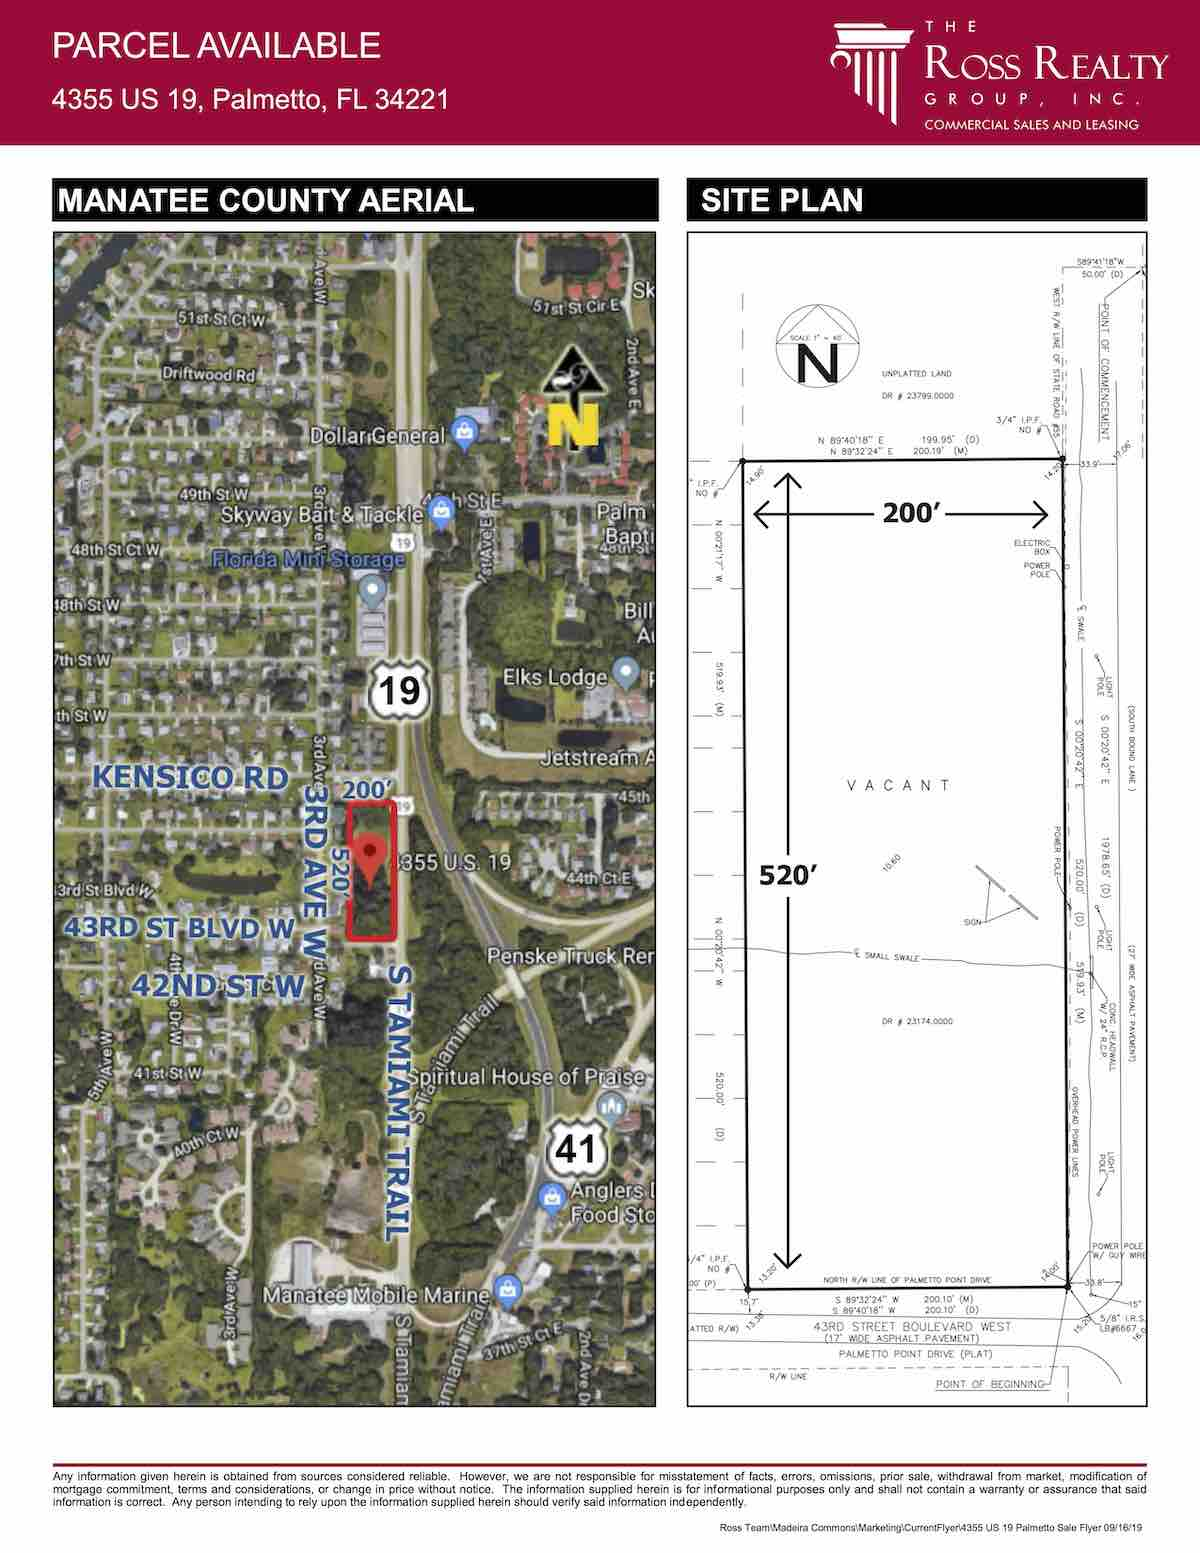 FOR SALE - Neighborhood Commercial or Multi-Family Site - Parcel Available - 4355 US 19, Palmetto, FL 34221 P2